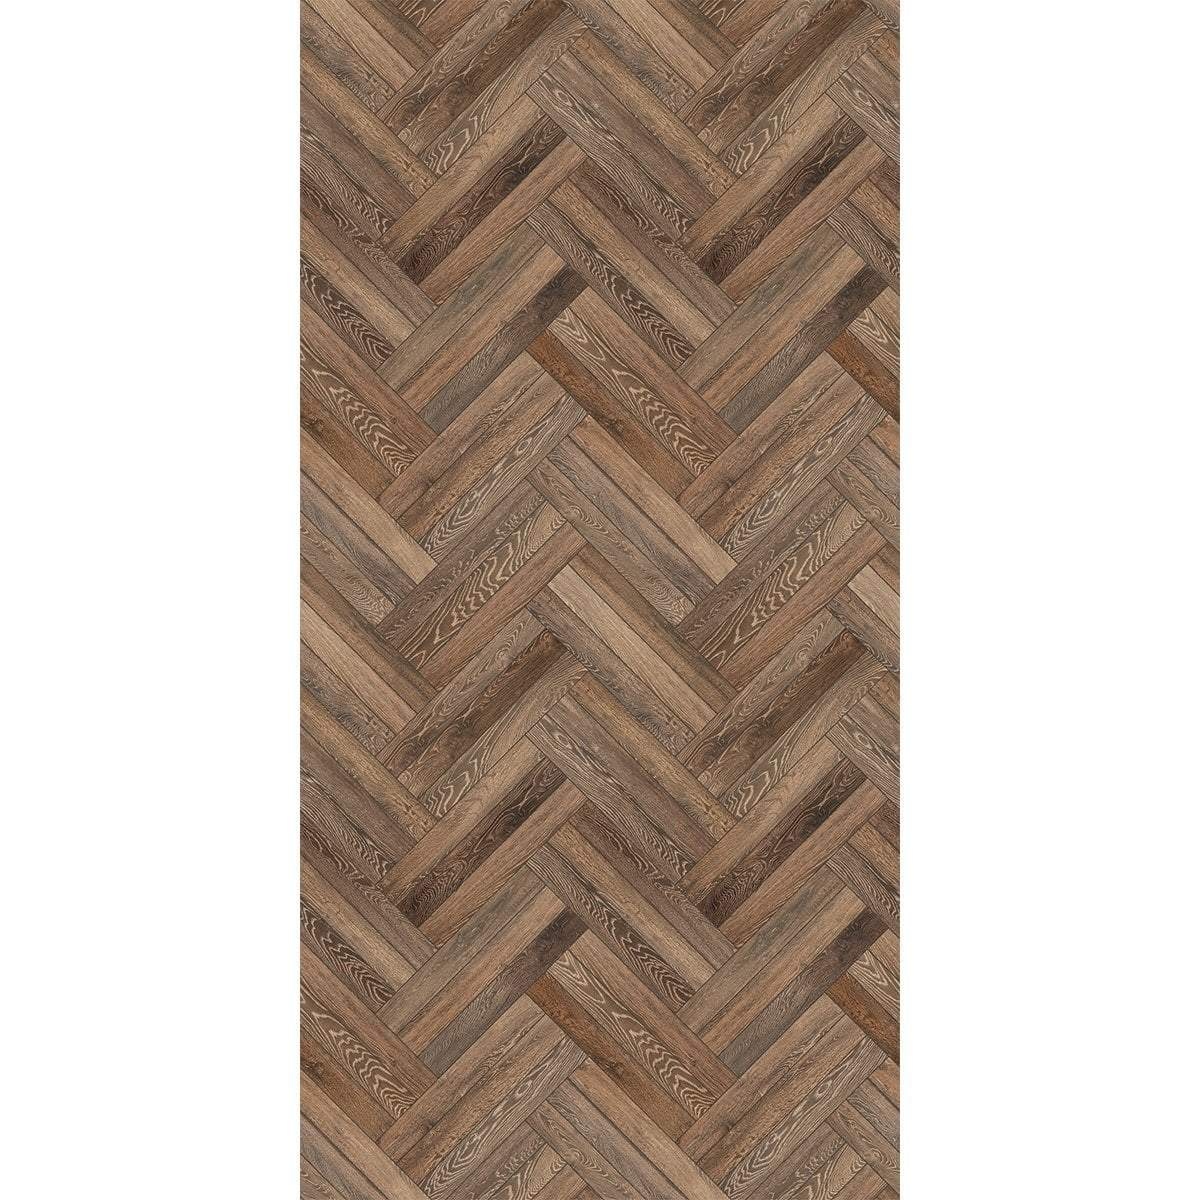 Muffle Pattern Wood Four Square Furniture